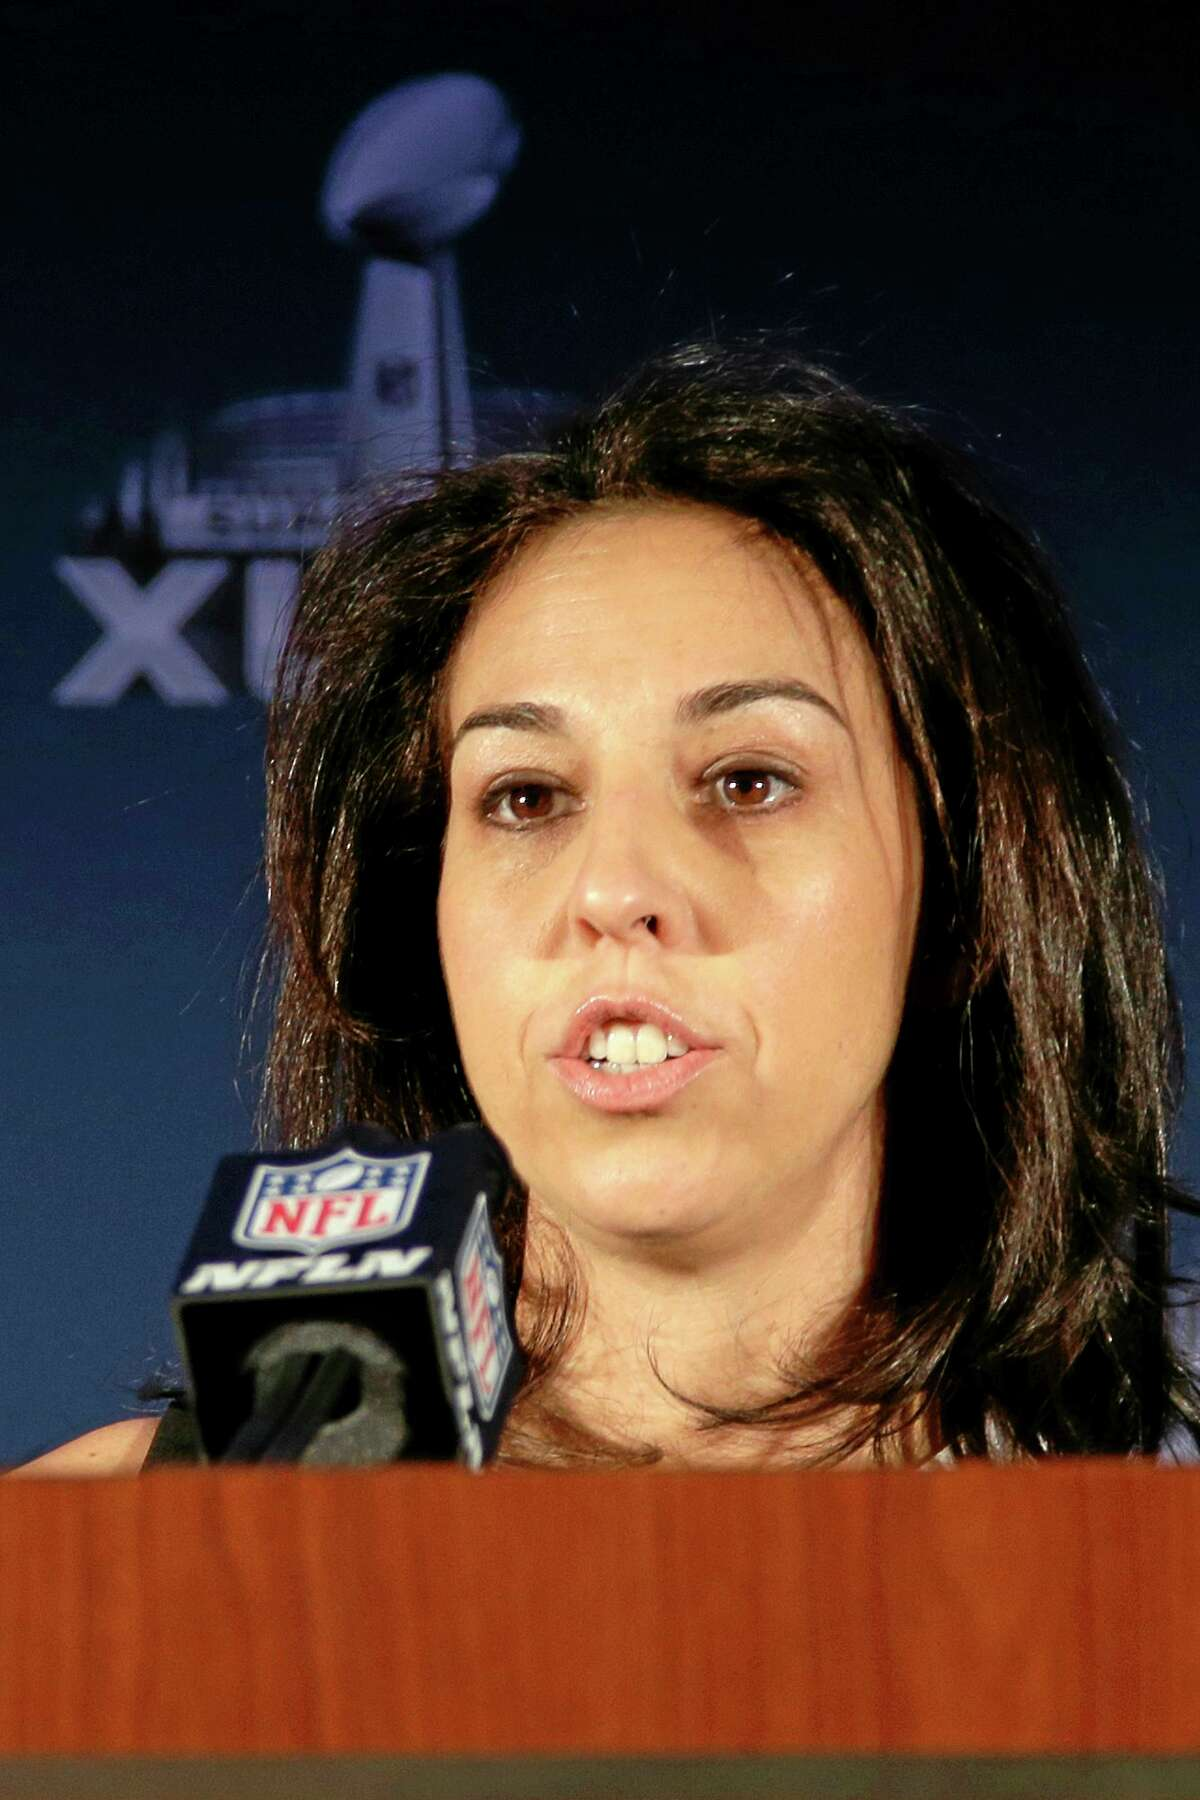 In this Jan. 30 photo, NFL senior vice president Anastasia Danias speaks during a news conference at the NFL Super Bowl XLVIII media center in New York.